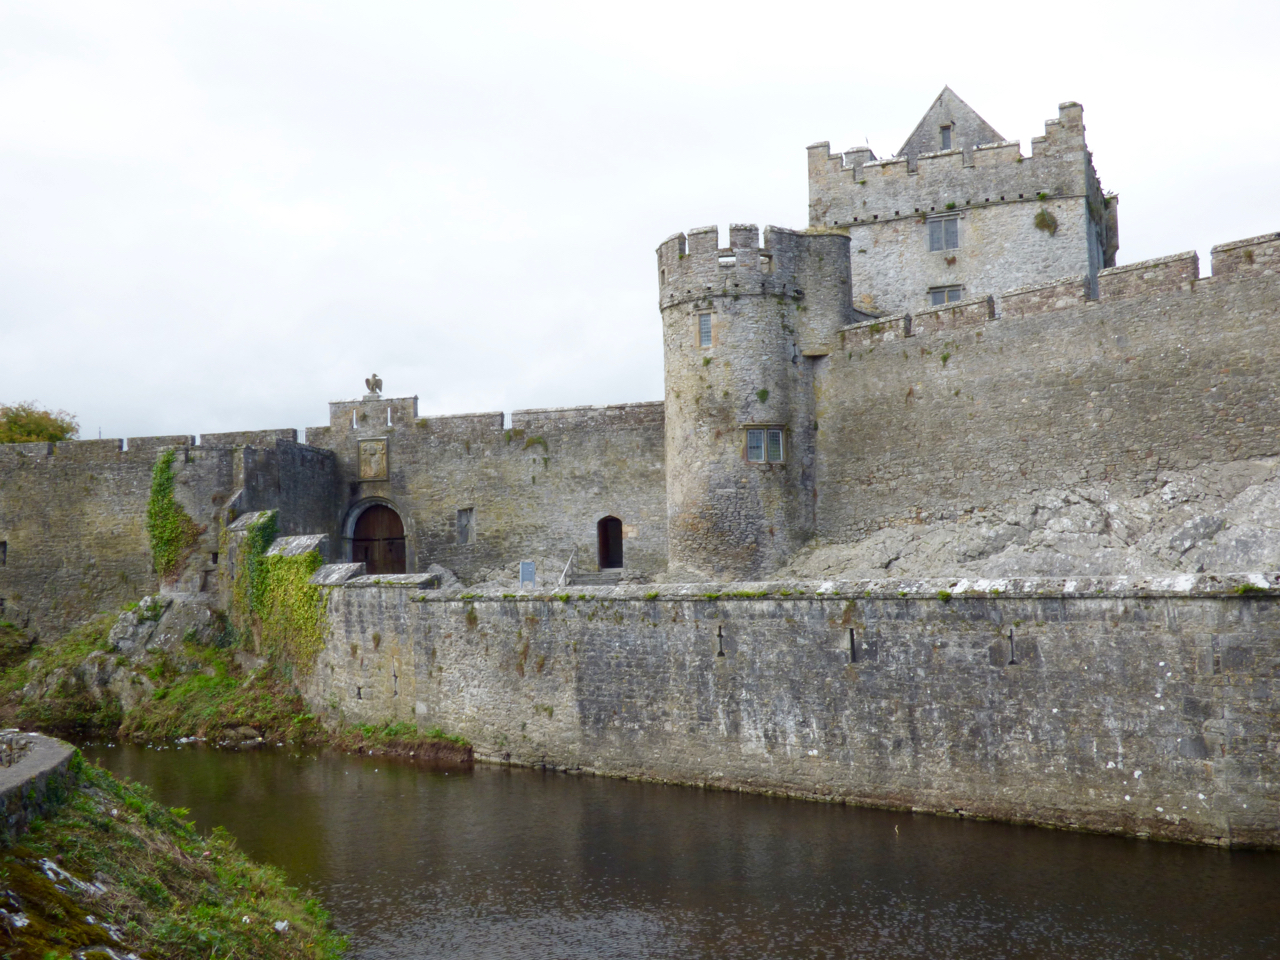 Cahir Castle Ireland from outside with moat